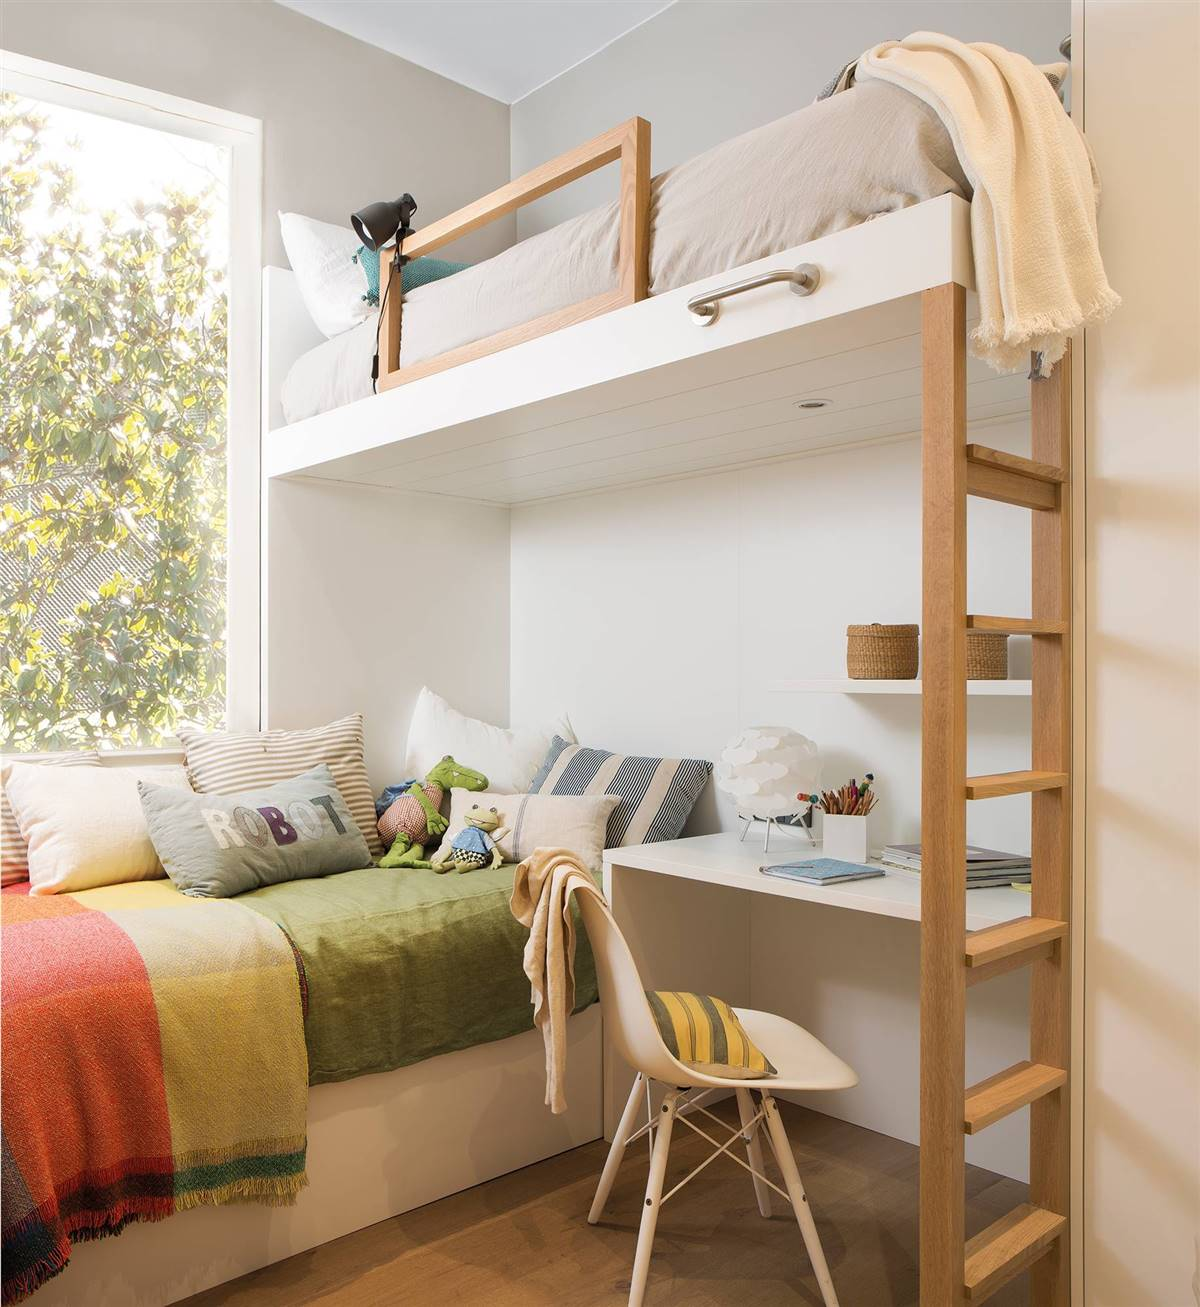 A MINI ROOM WITH TWO BEDS AND A STUDY AREA